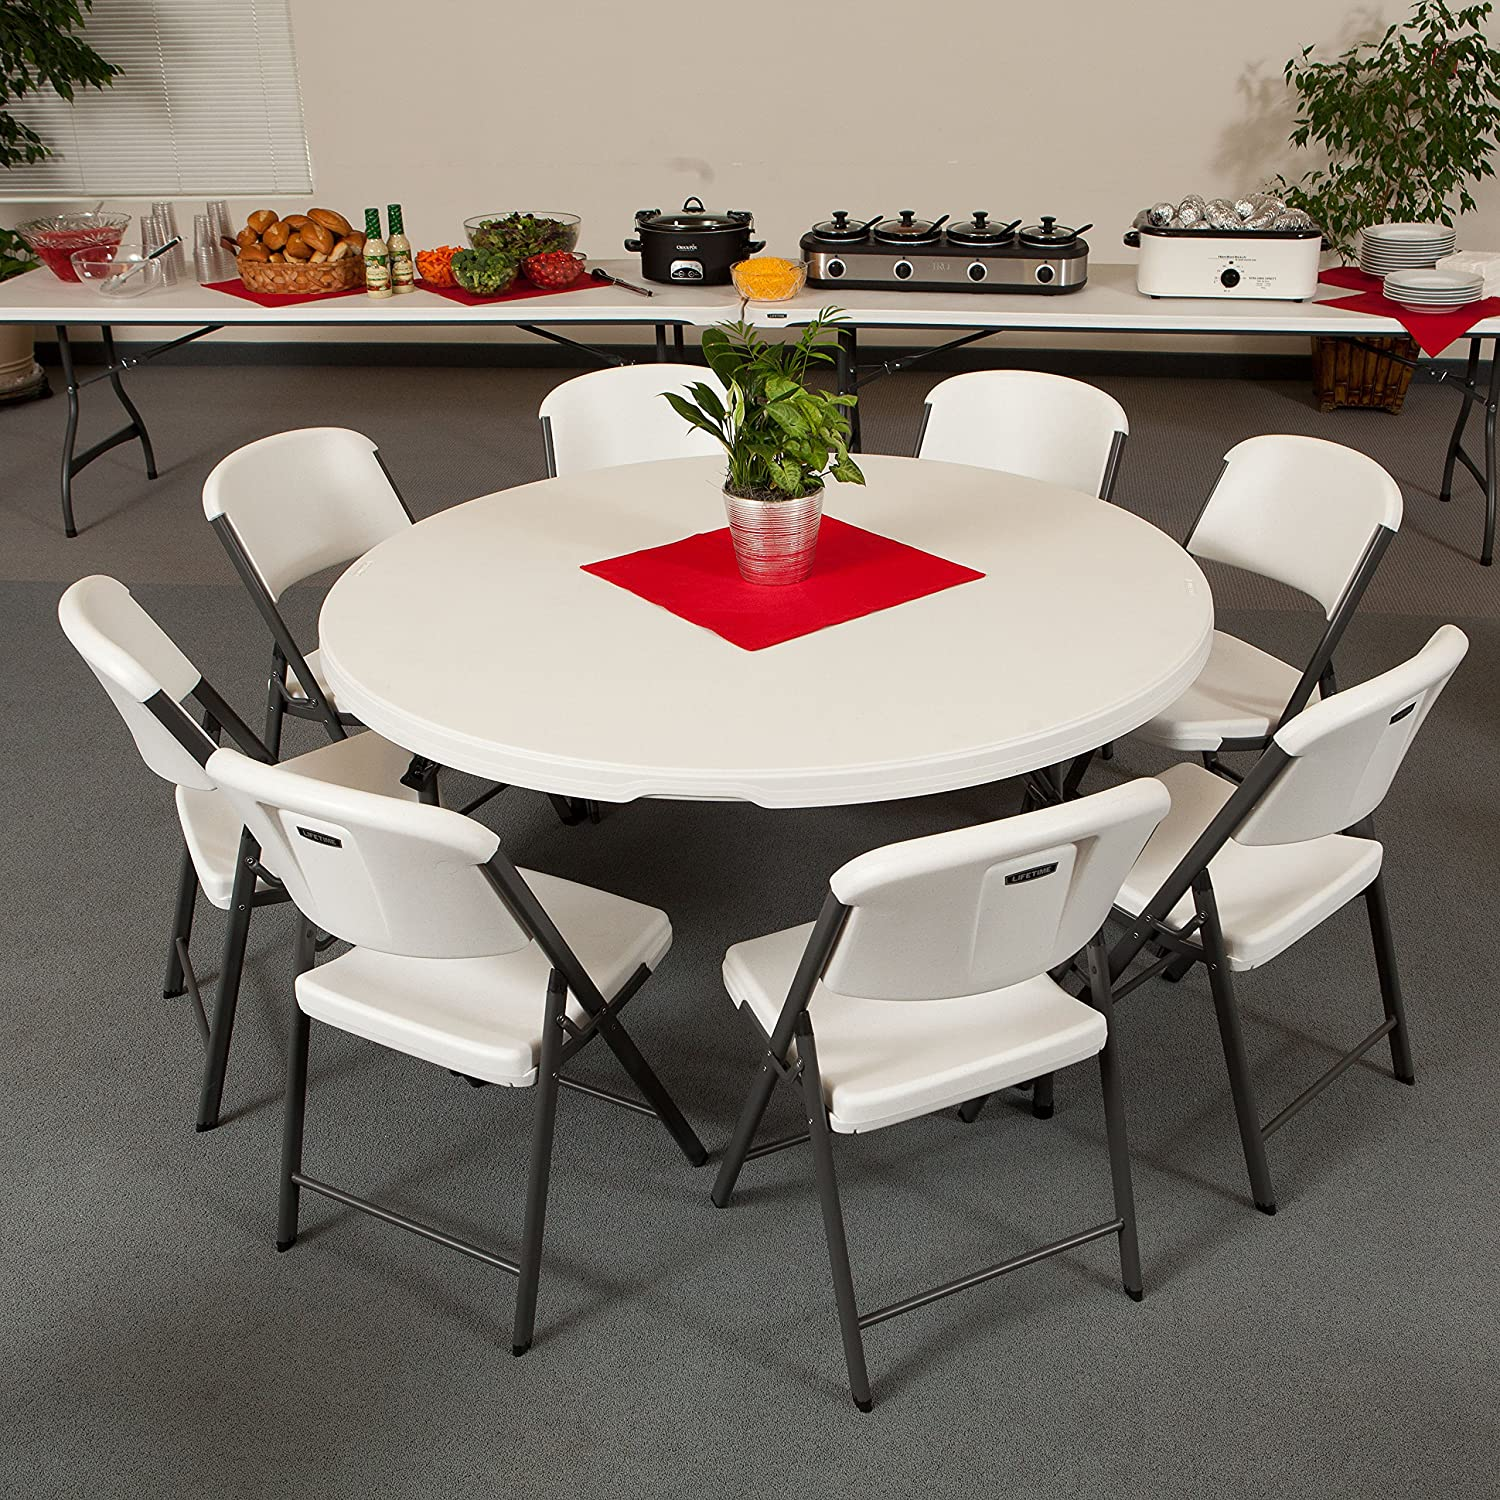 Amazon Lifetime mercial Round Folding Table 5 Feet